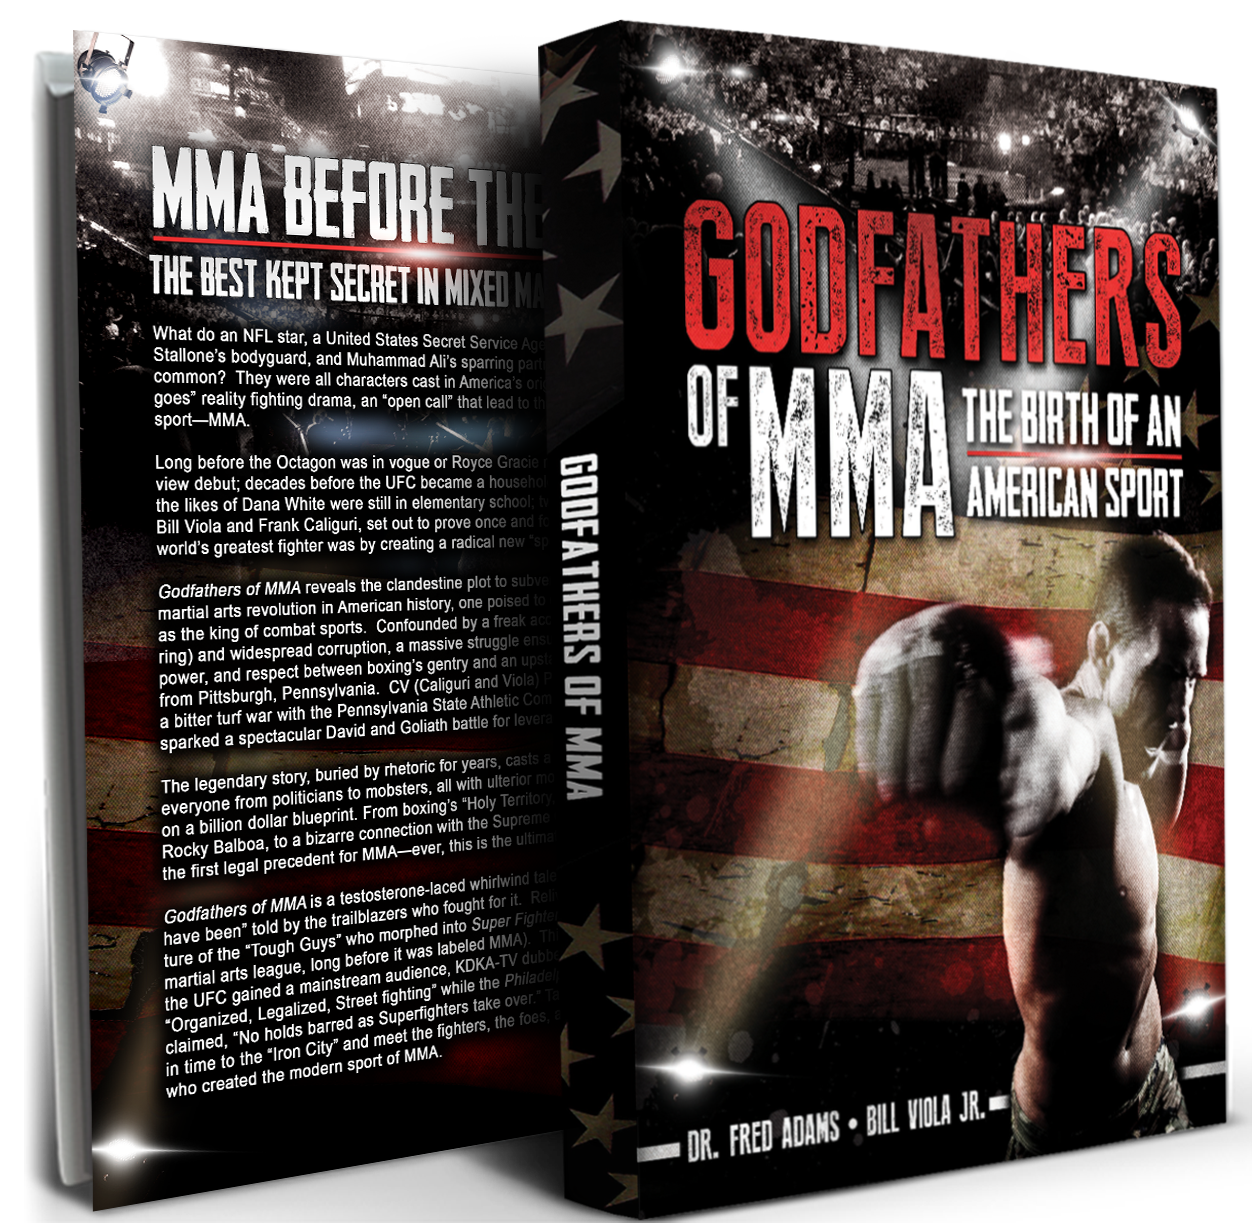 Godfathers of MMA book